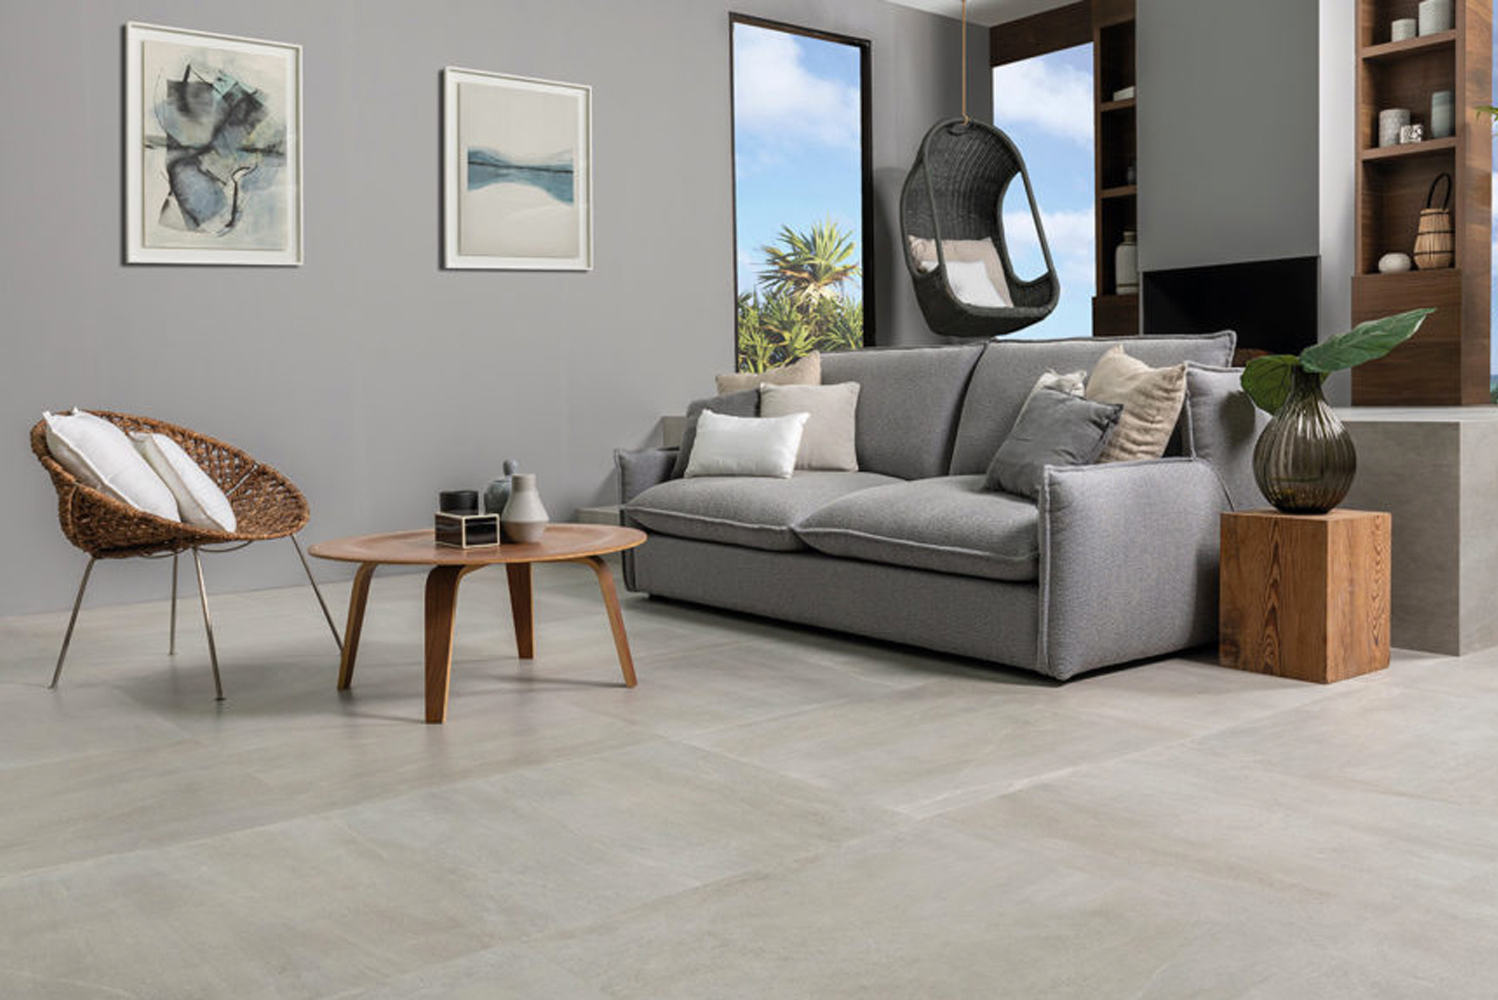 Available in caliza, natural, acero and black, the Urban collection of floor tiles comes in different formats, including: 100 cm x 100 cm, 80 cm x 80 cm, and 59.6 cm x 59.6 cm.